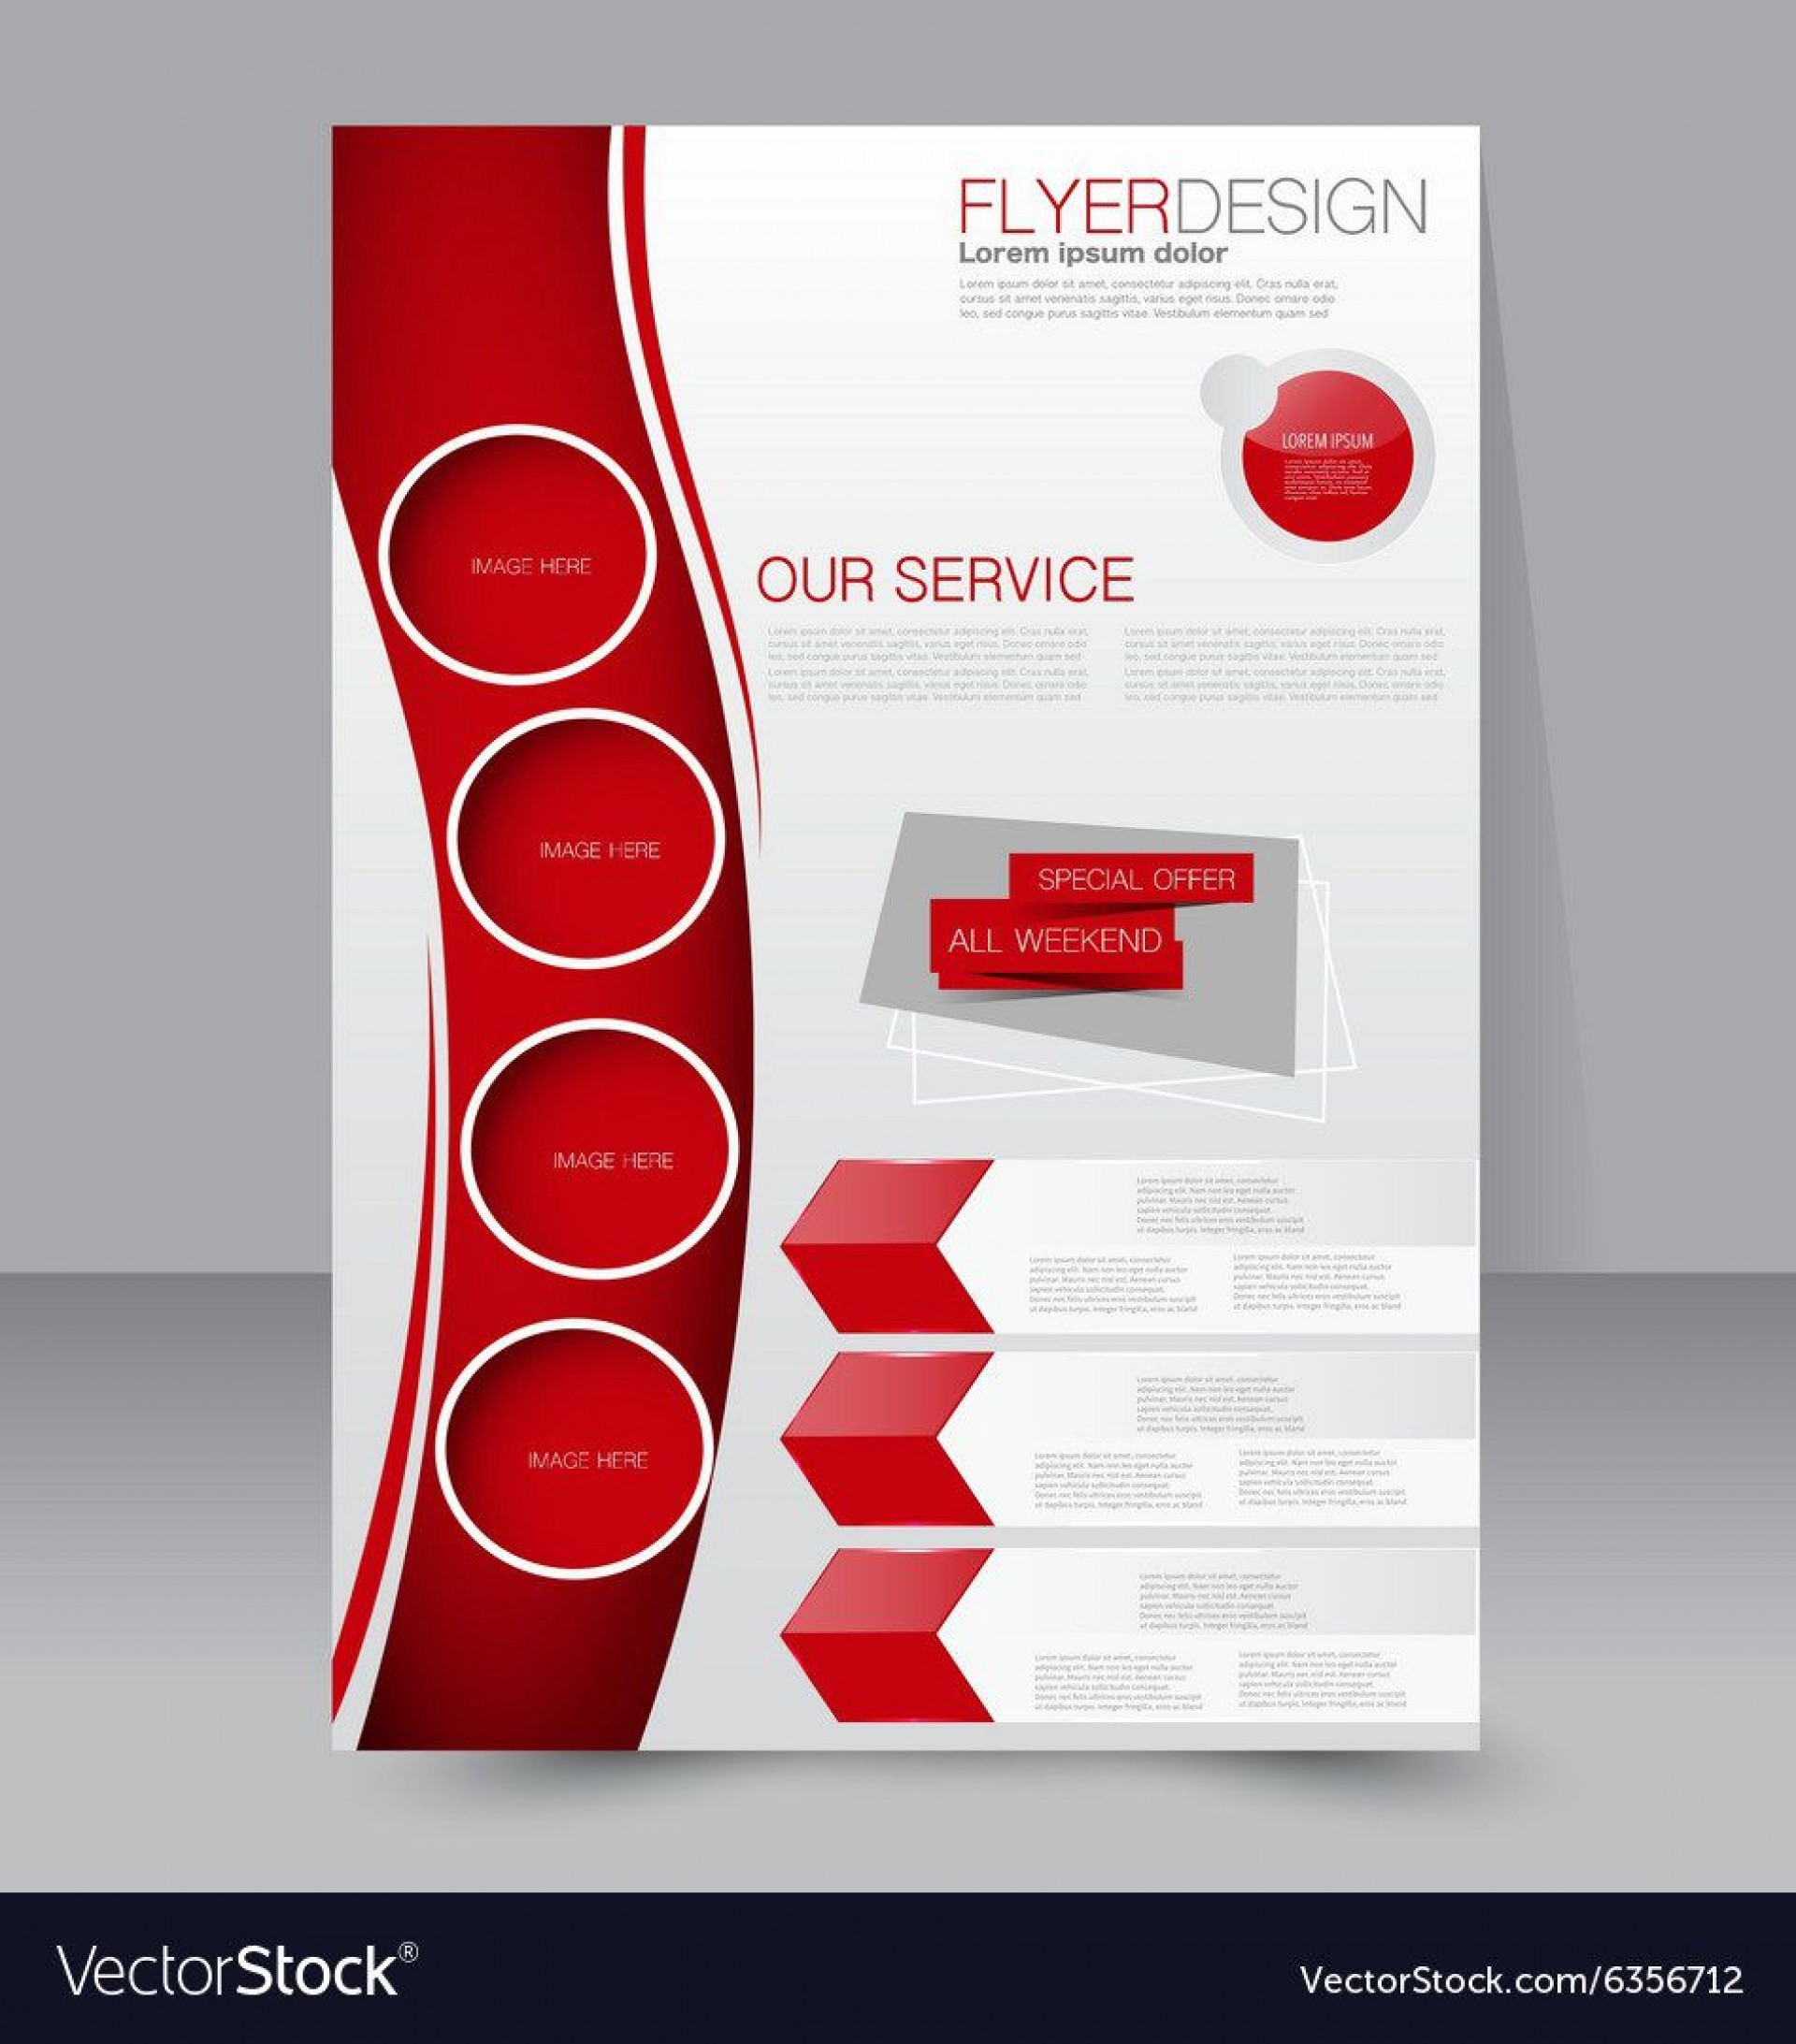 007 Beautiful Busines Flyer Template Free Download Inspiration  Psd Design1920